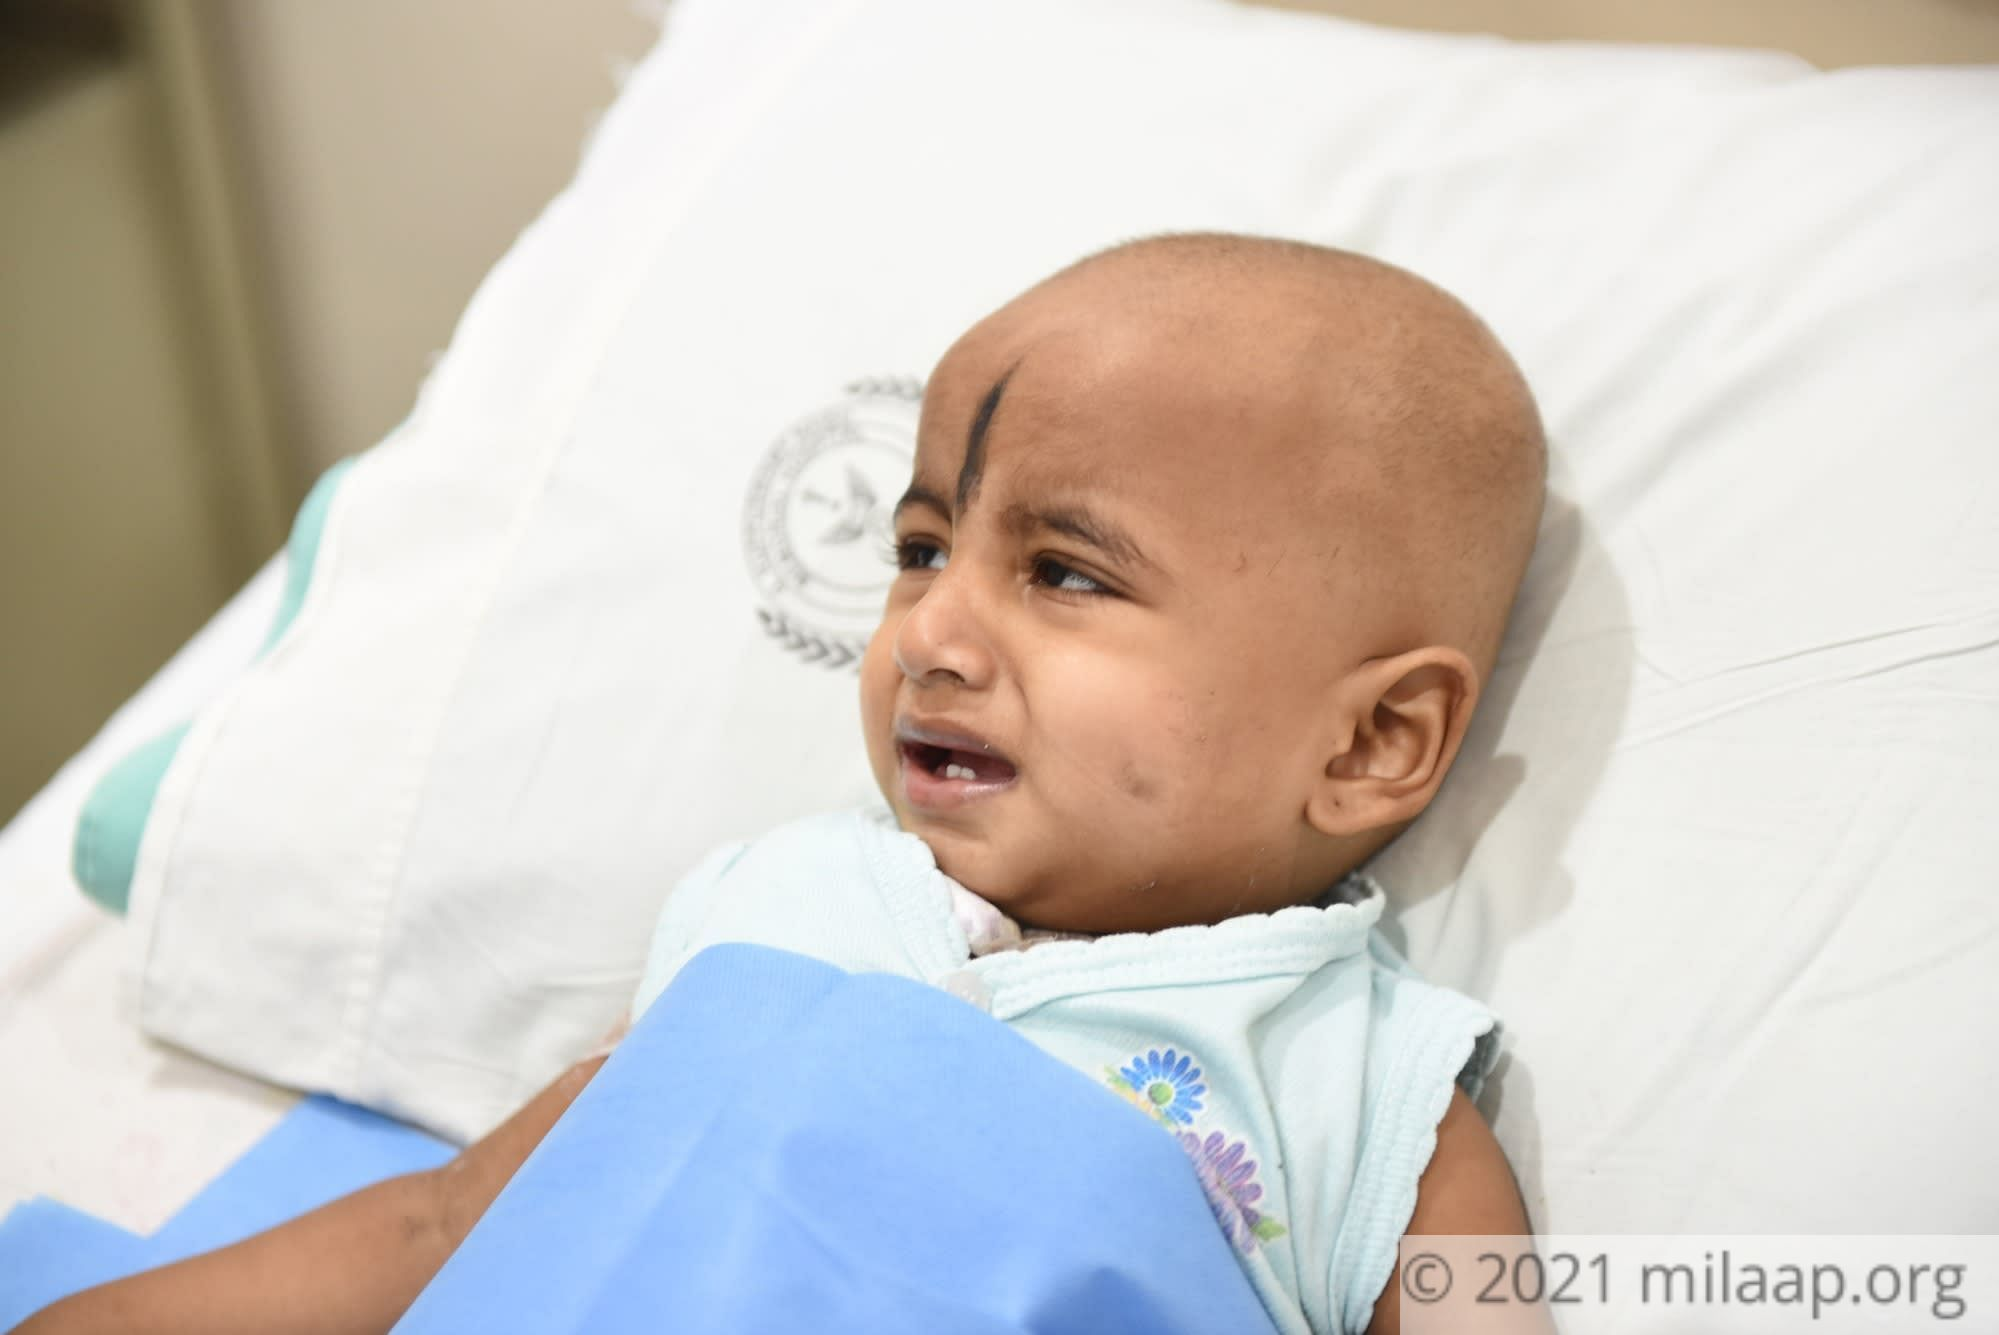 Sri visaagan   coimbatore cancer foundation   gknmh 7 oja0ie 1584415579